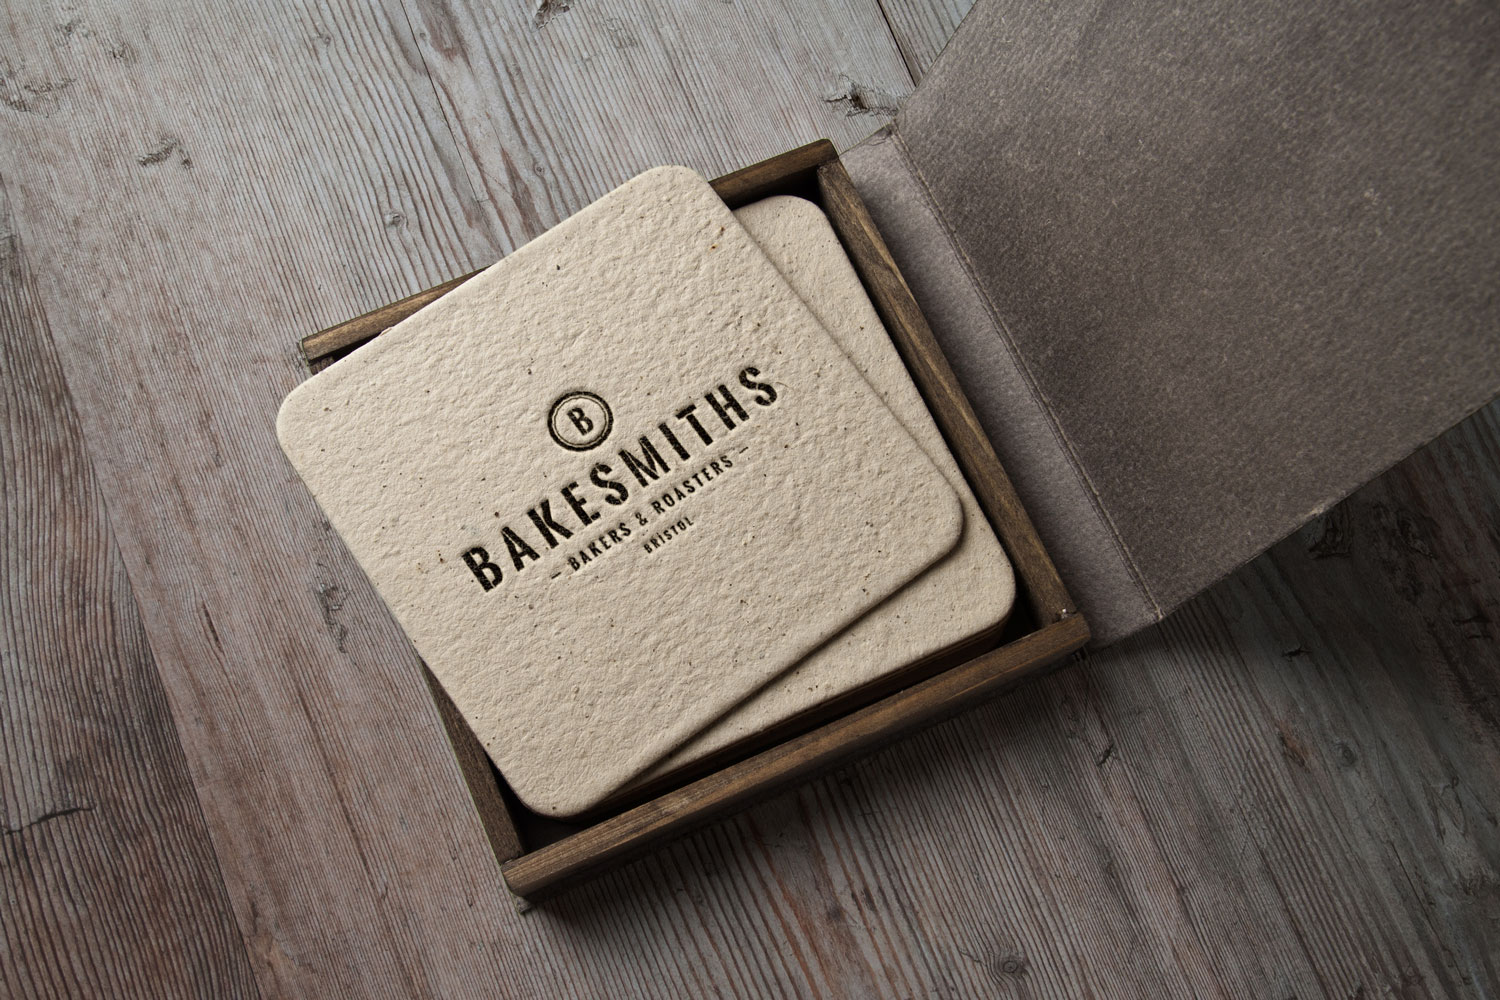 Bakesmiths-Coffee-Shop-Branding-Cup-Coaster-by-Get-it-Sorted.jpg